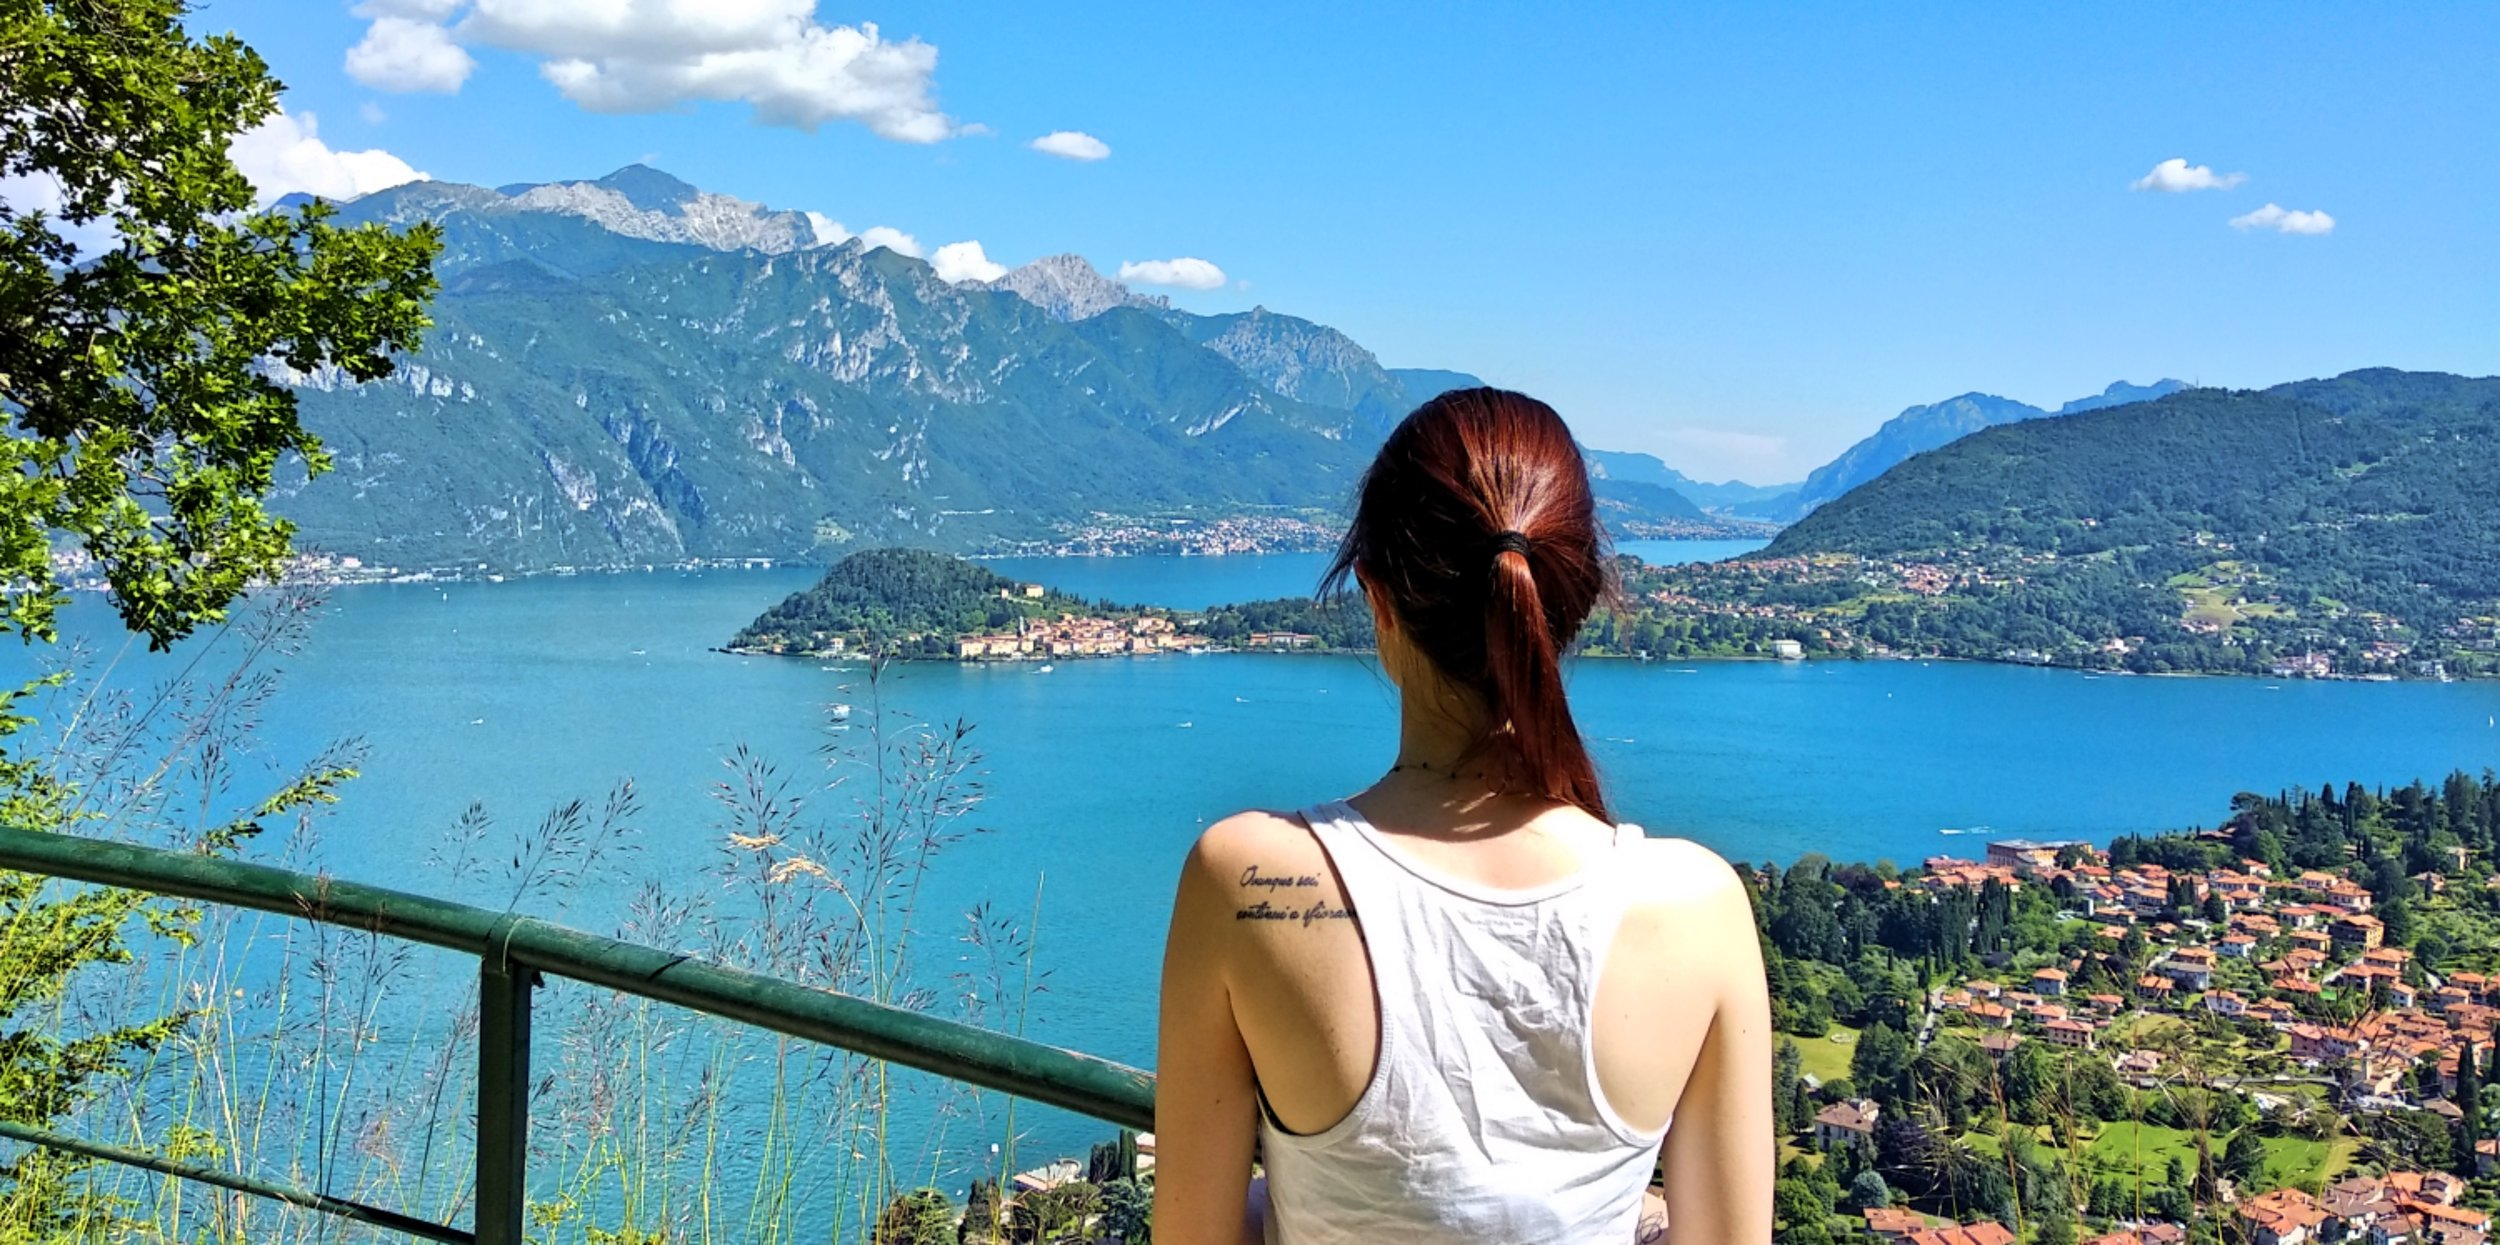 Elisa, our Rentals Consultant, in one of her typical contemplative moments in front of Lake Como